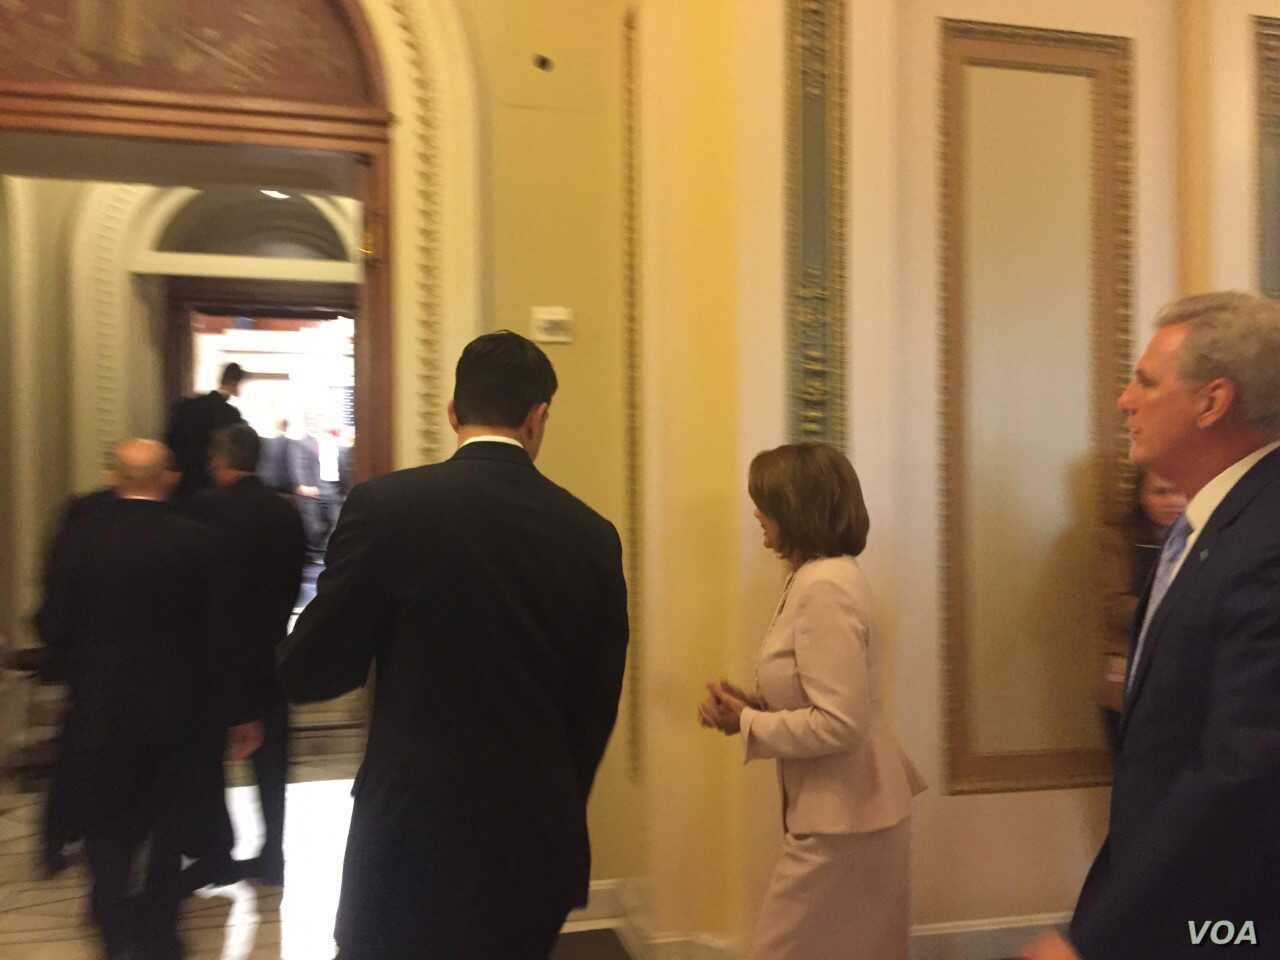 House Majority Leader, Republican Paul Ryan (center) walks with House Minority Leader, Democrat Nancy Pelosi (right) into House of Representatives chamber for new member swearing in ceremony, Jan. 3, 2017. (Photo: K. Gypson / VOA)